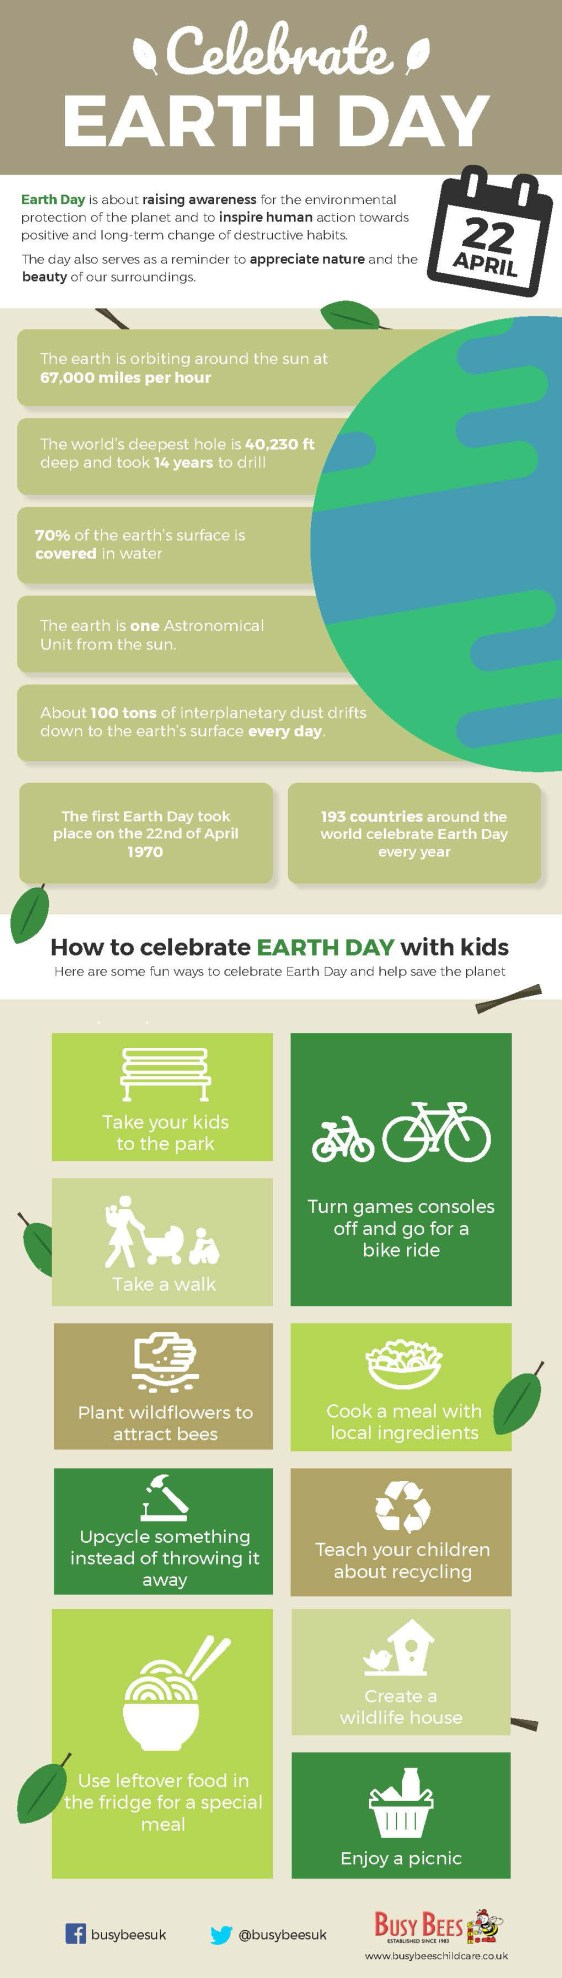 earth-day-infographic final